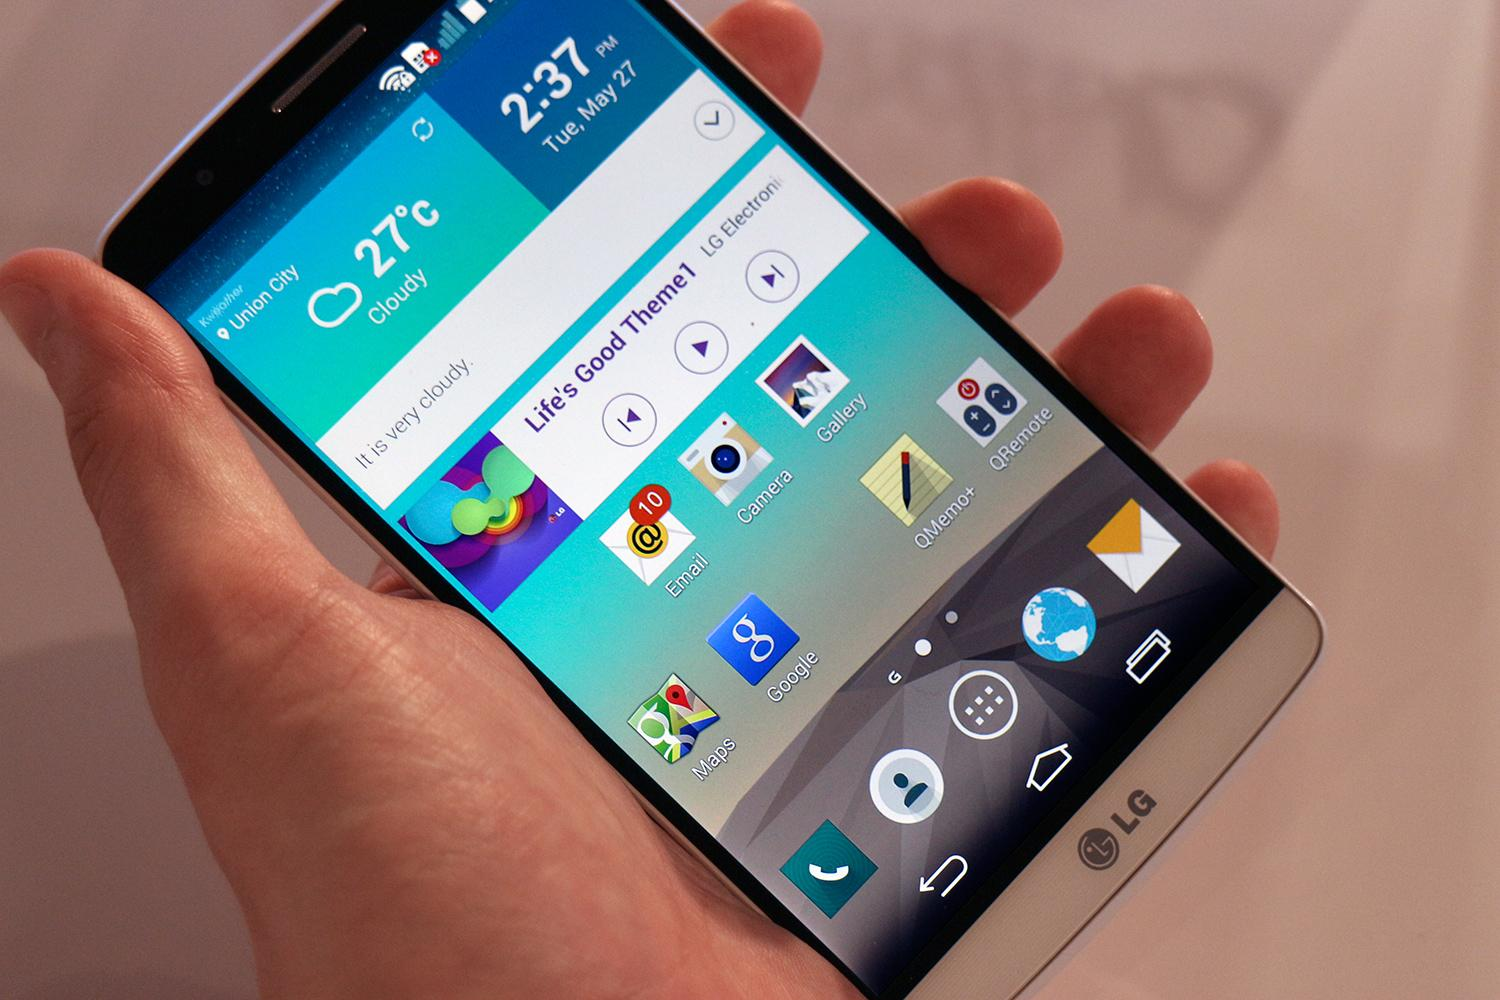 lg g3 may be outselling the galaxy s5 in south korea digital trends. Black Bedroom Furniture Sets. Home Design Ideas